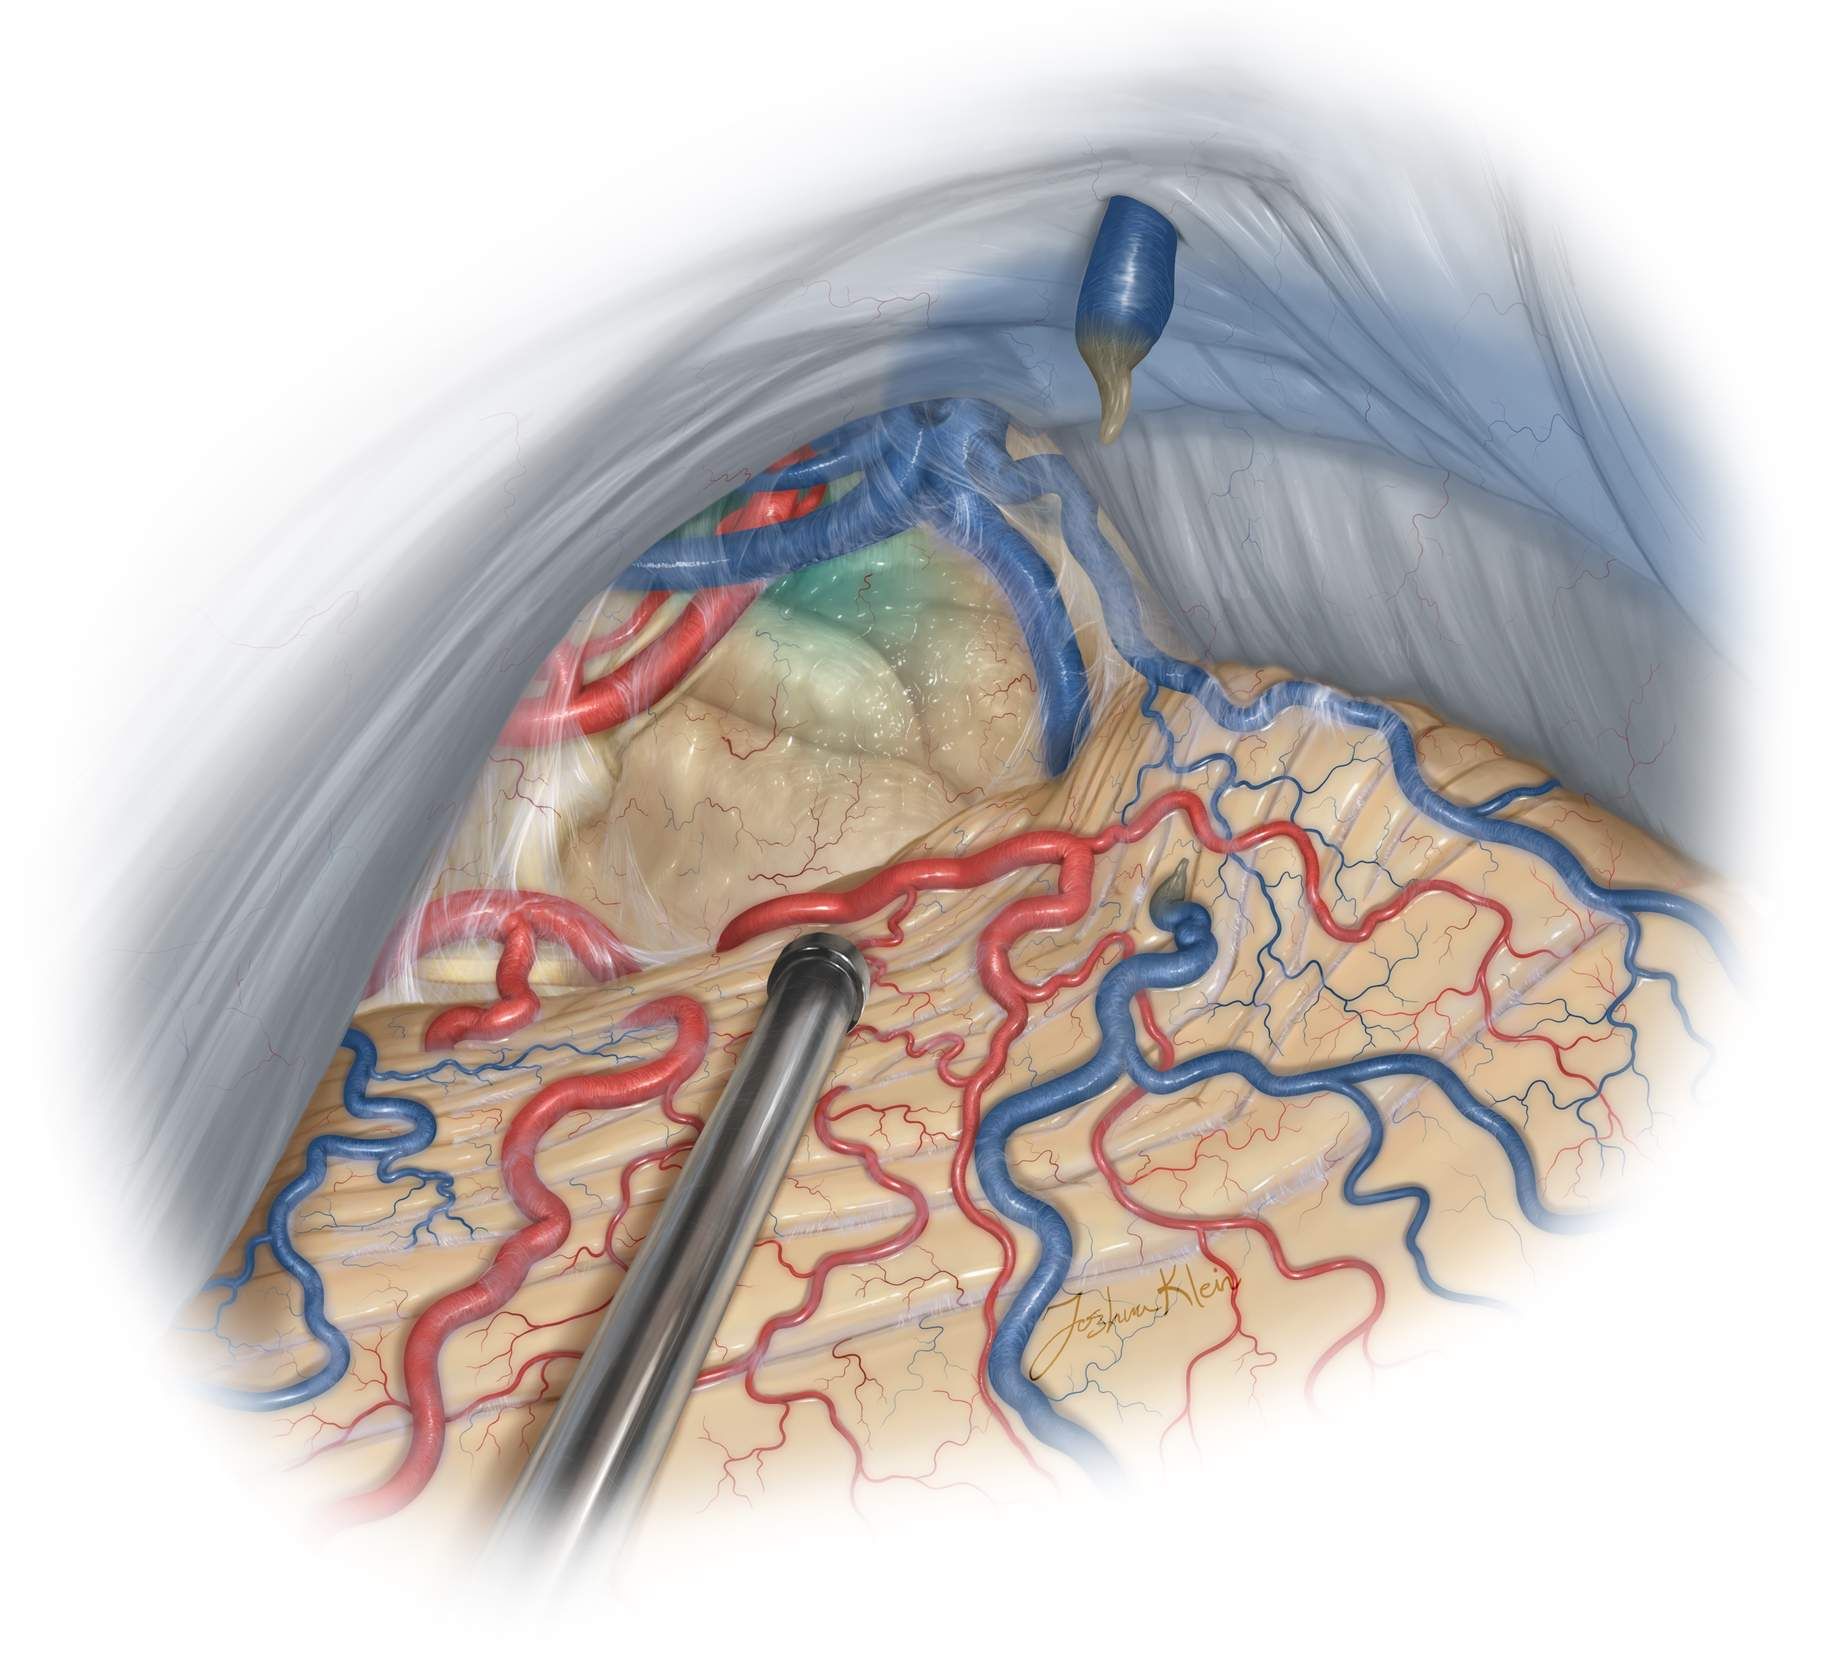 Figure 18: This non-traditional lateral trajectory can be disorienting to the surgeon. The third ventricle in ghosted in blue anterior to the tumor to illustrate the risk of penetrating the contralateral wall of the ventricle if the operator is not aware of the underlying anatomy deep to the tumor based on the working angle of the dissection.